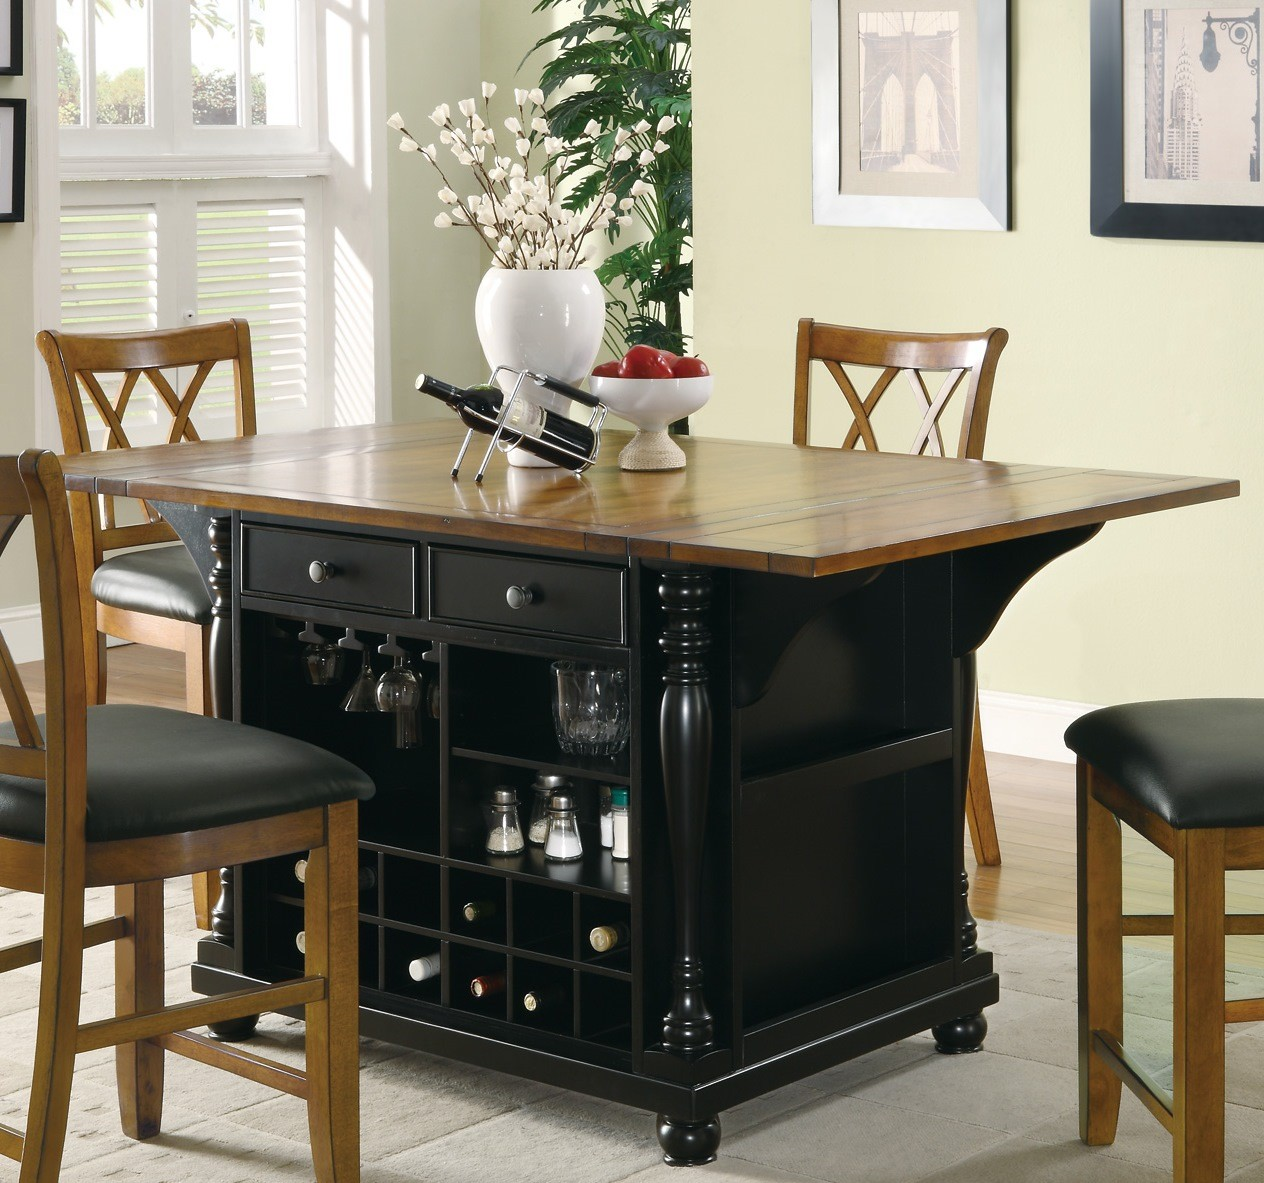 Kitchen Island Furniture: 102270 Black Kitchen Island From Coaster (102270